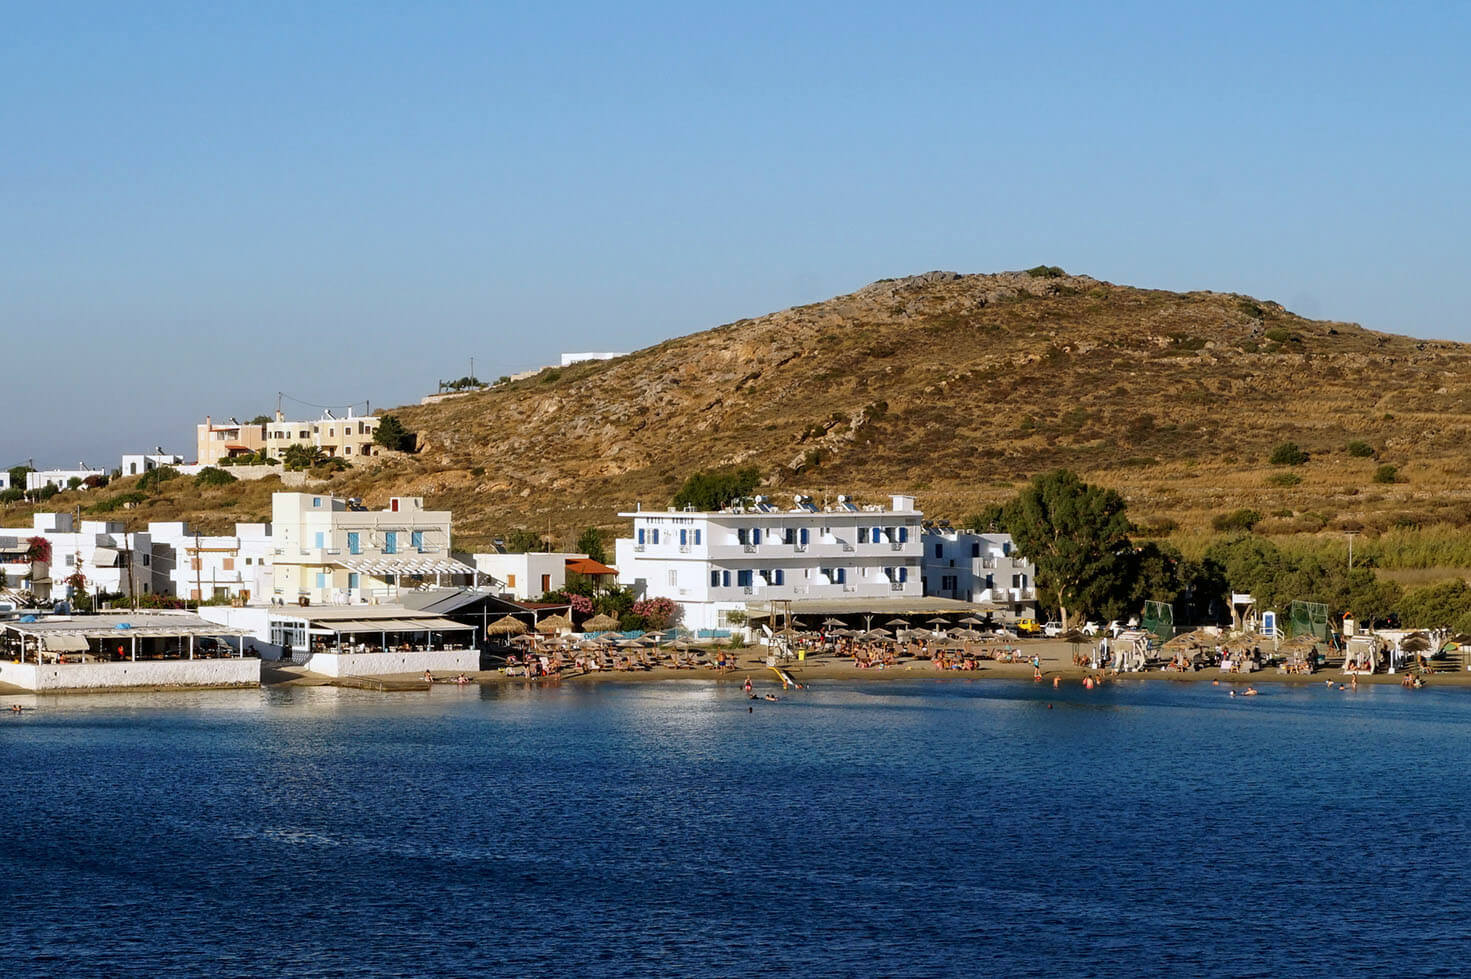 Beach hotels in Syros